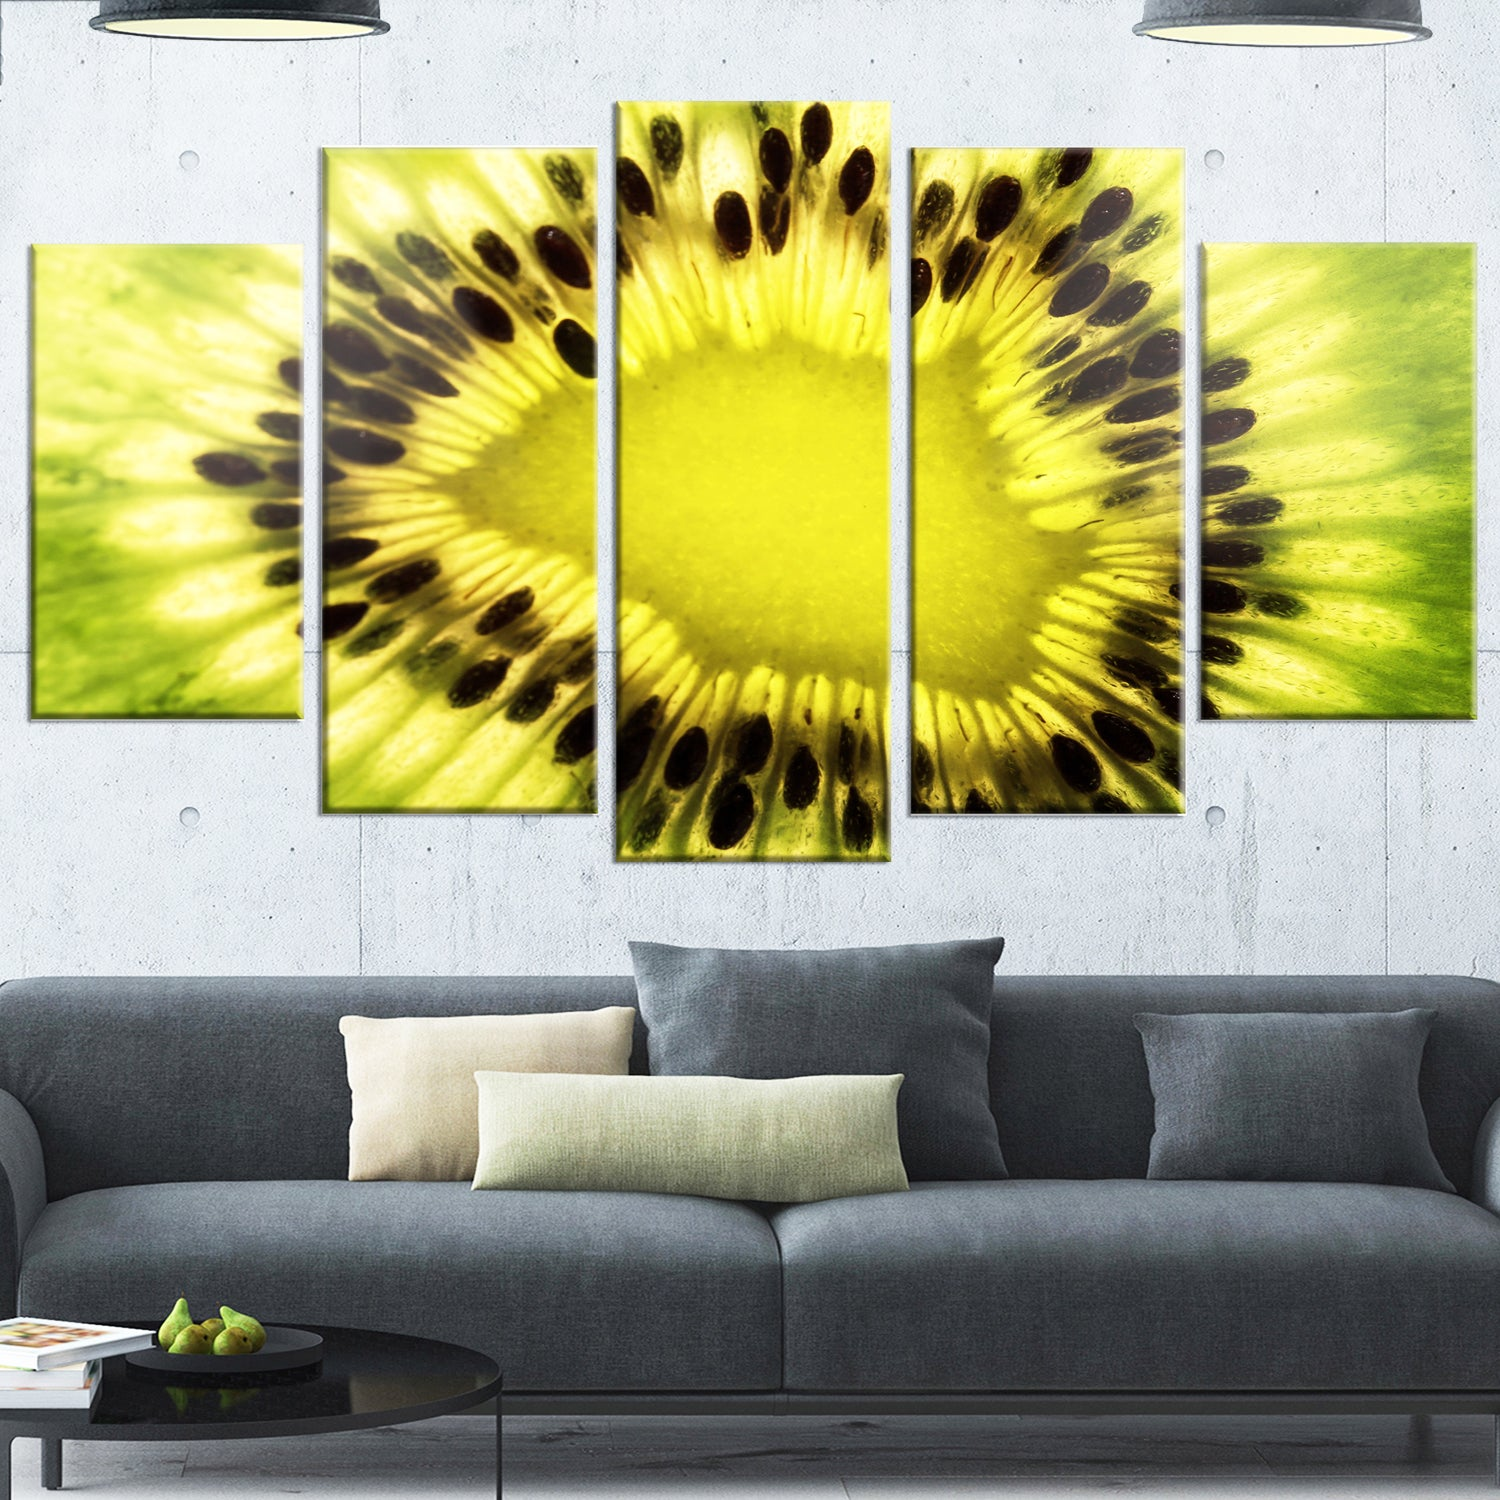 Delighted Laser Wall Art Ideas - The Wall Art Decorations ...